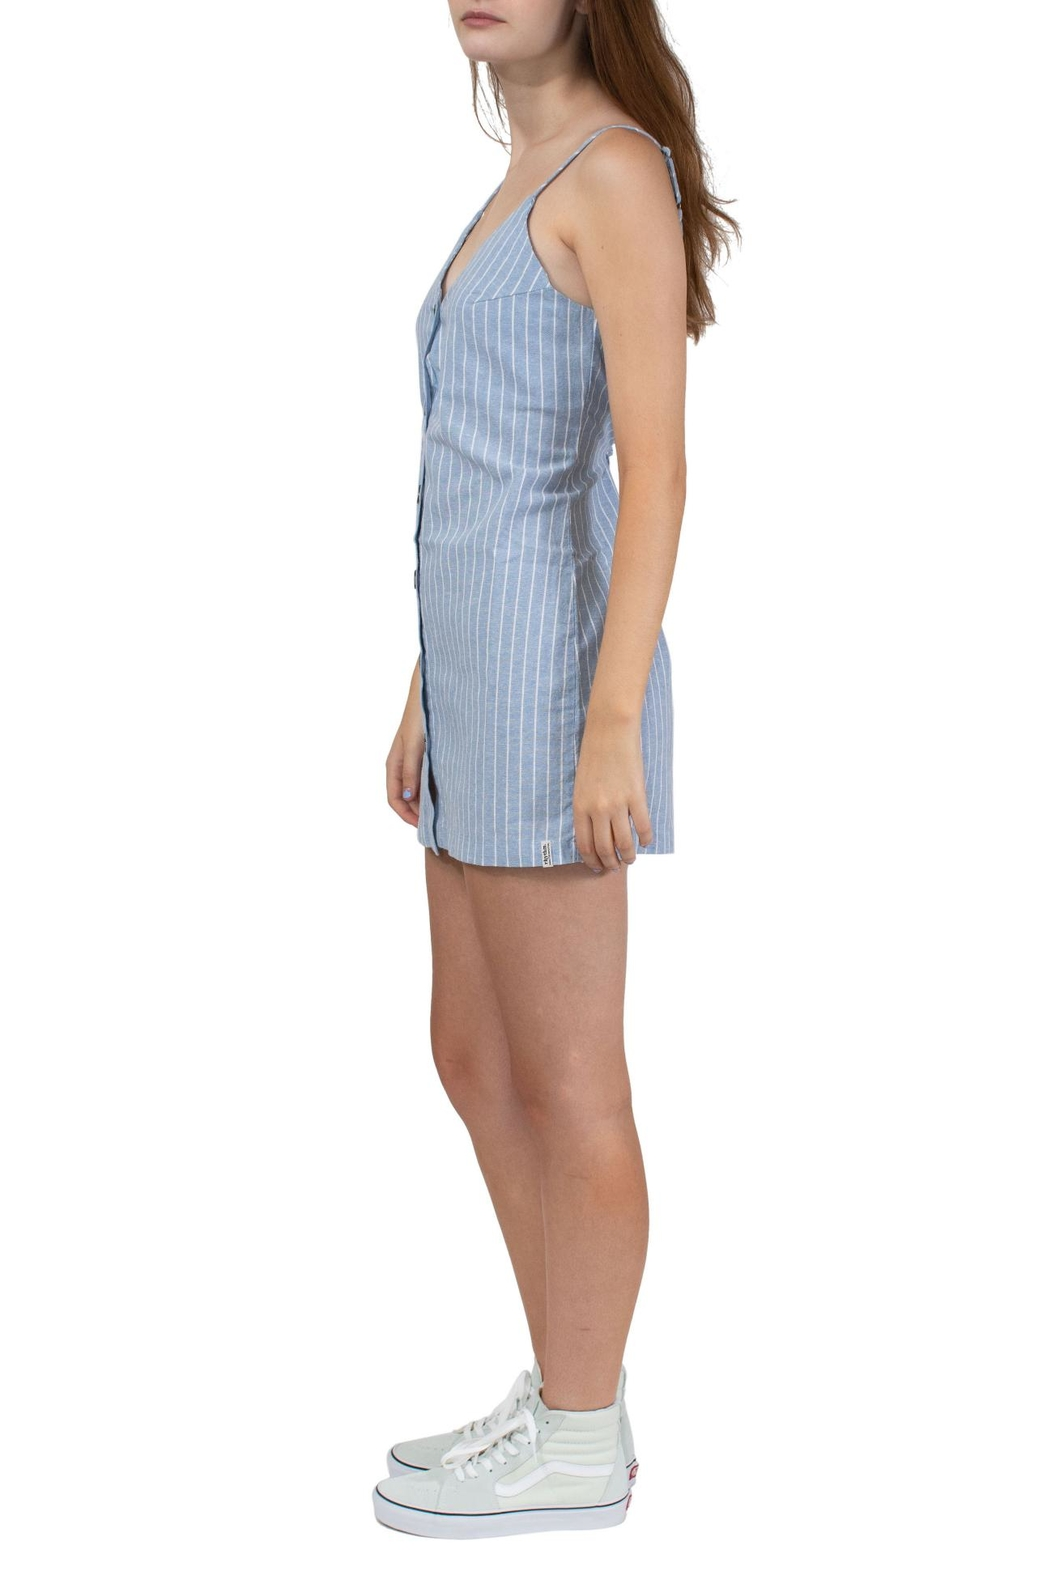 Rhythm  Sky Castaway Dress - Side Cropped Image